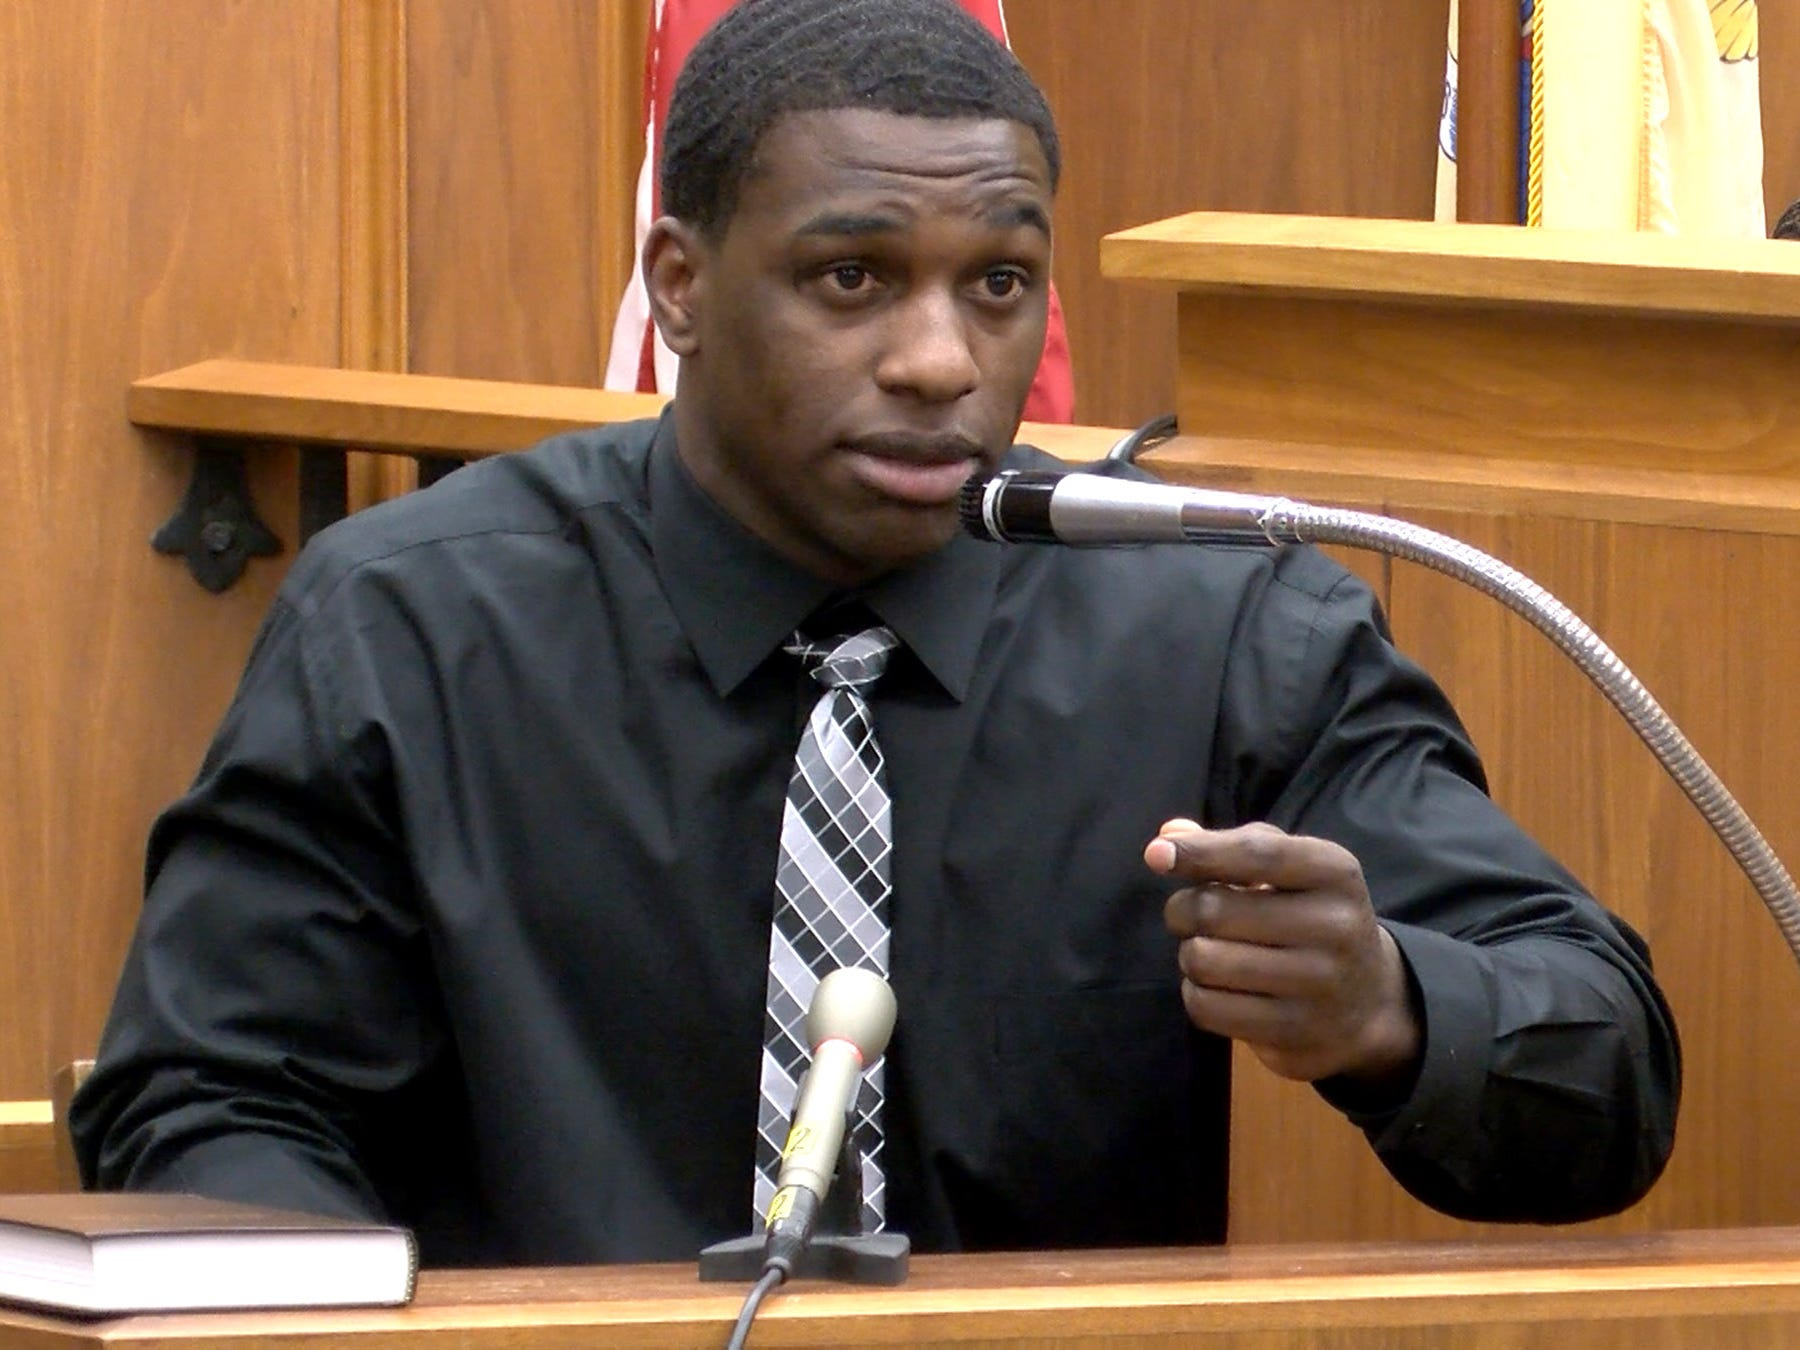 Dante Allen testifies during his attempted murder trial in State Superior Court in Freehold Wednesday, May 1, 2019.  He is charged with shooting at Asbury Park police Officer Terrance McGhee during a foot chase.